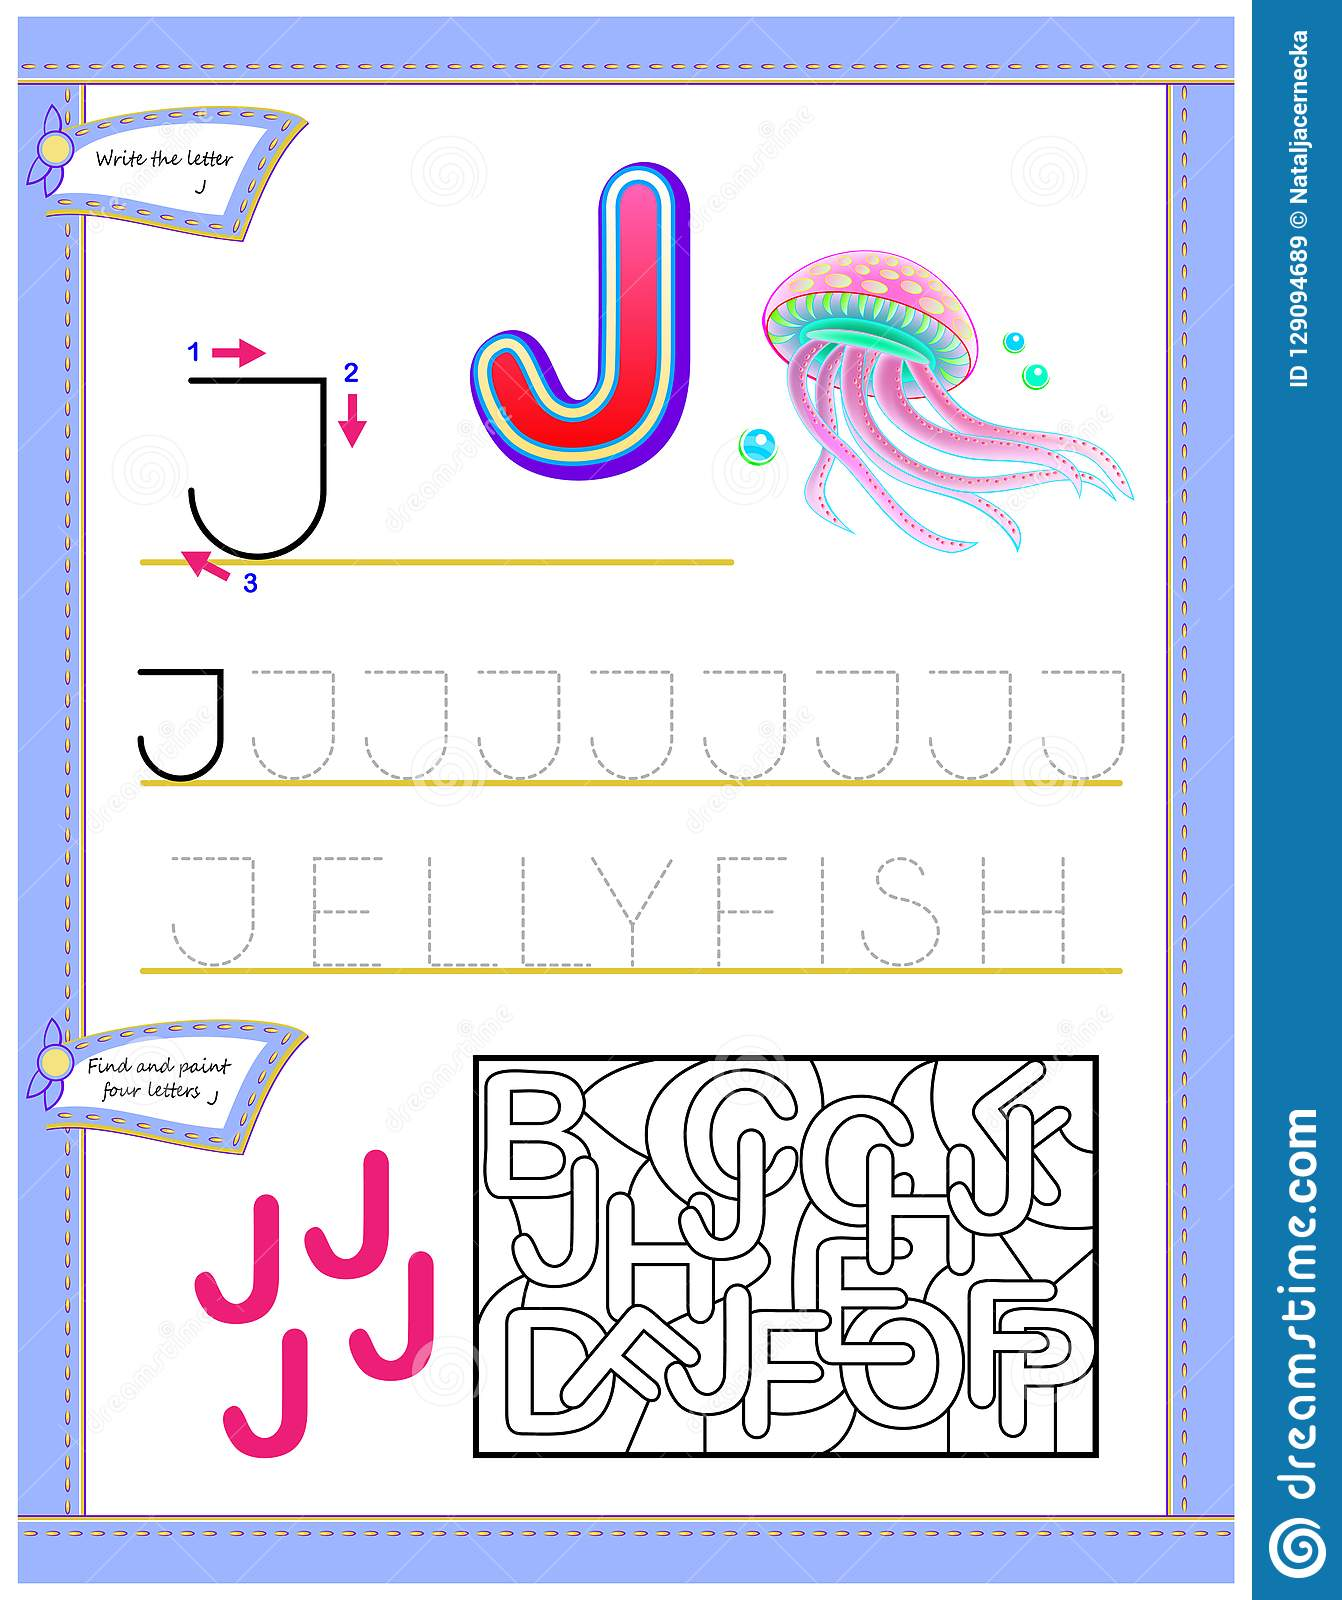 Worksheet For Kids With Letter J For Study English